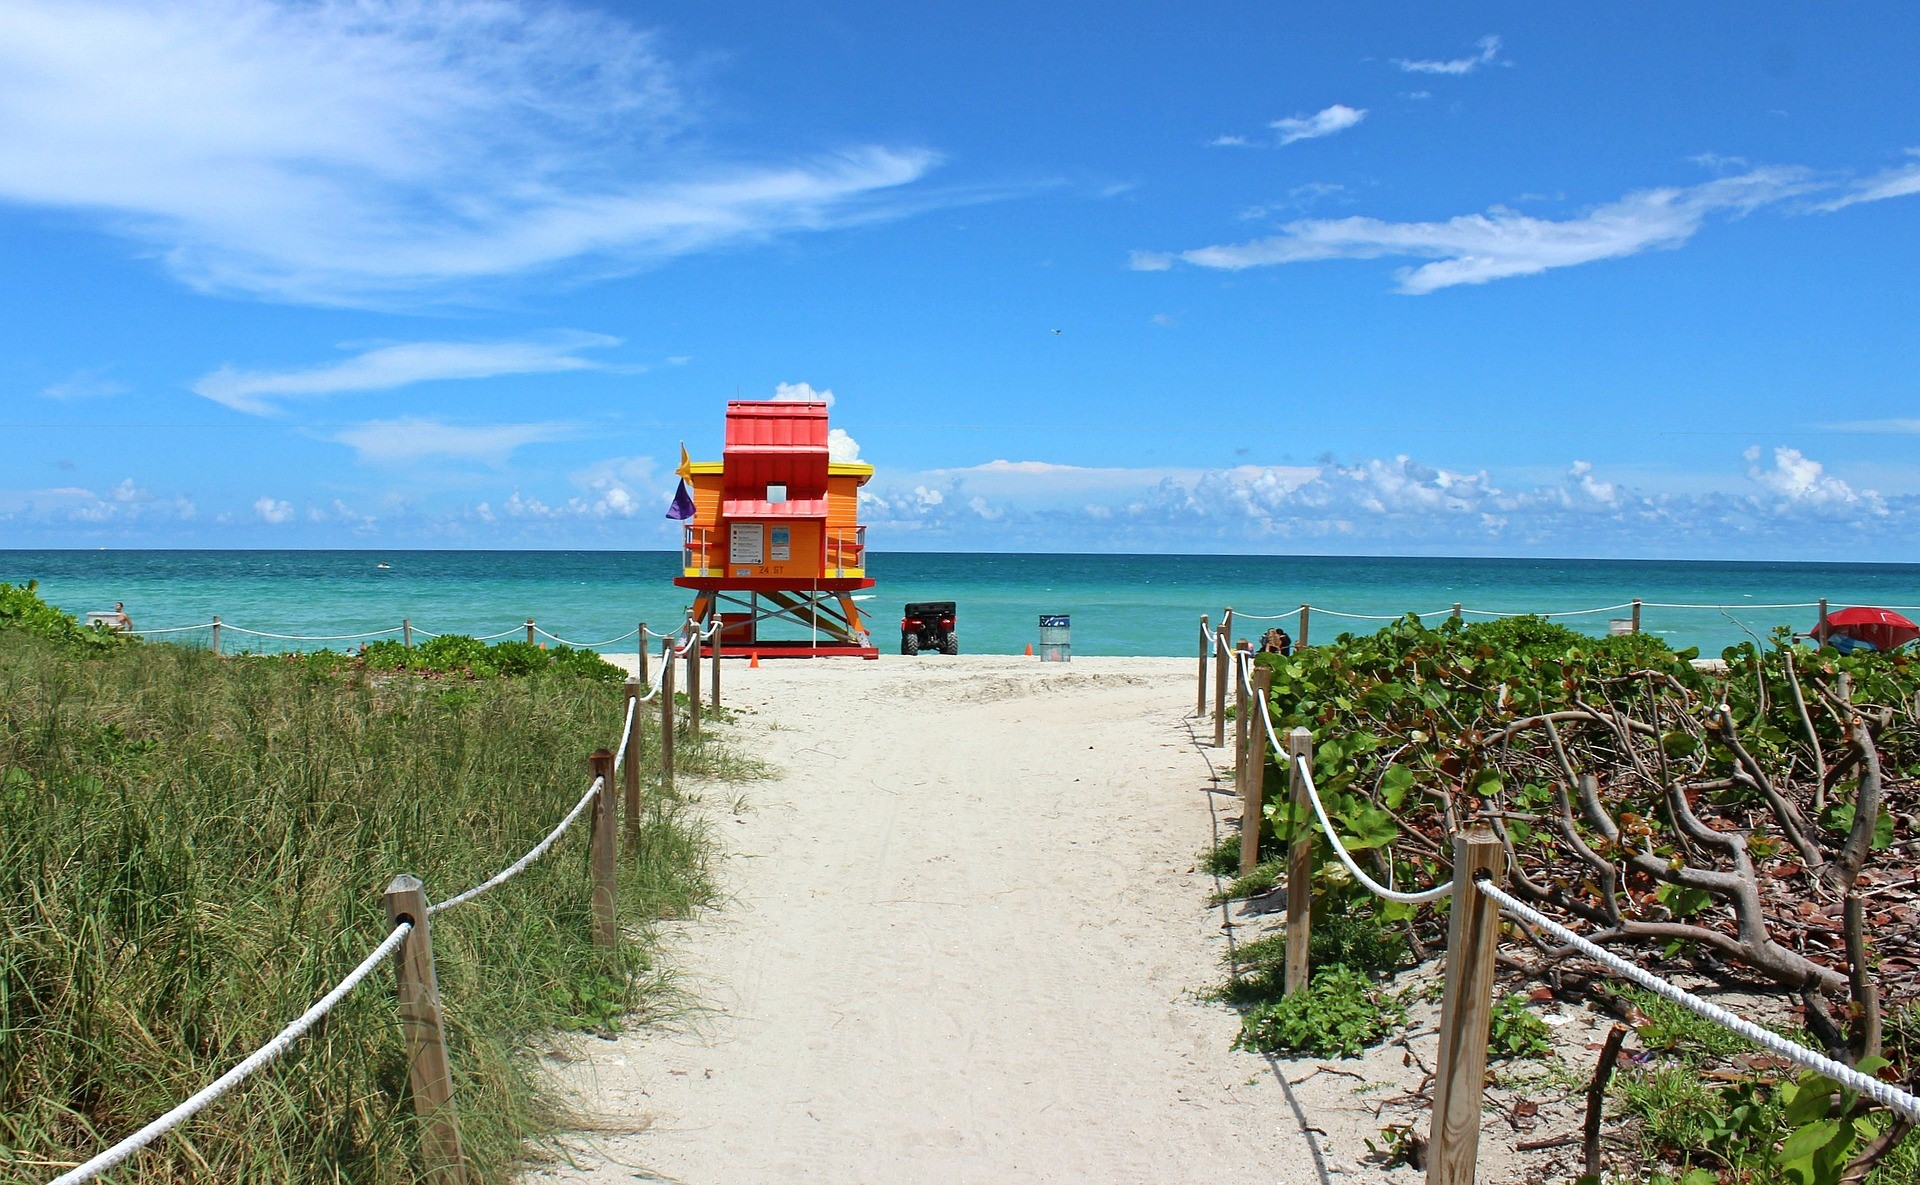 Fall into the Season with Special Events and Experiences on Miami Beach